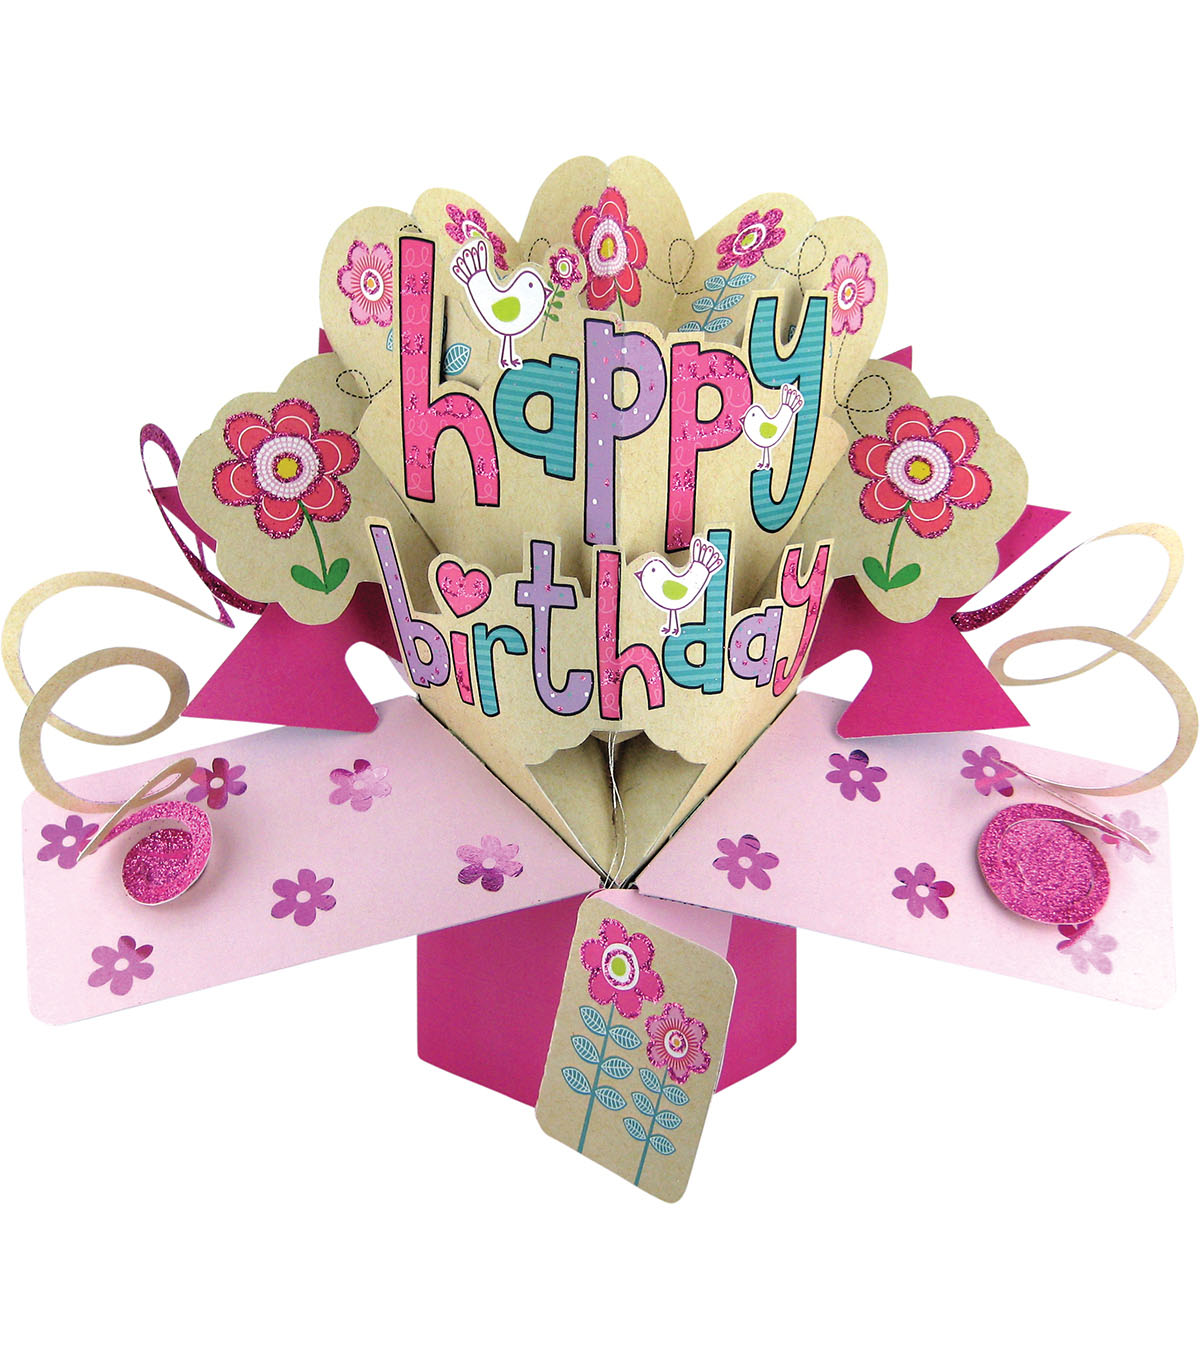 Second Nature Pop-Up 3D Greeting Card-Happy Birthday